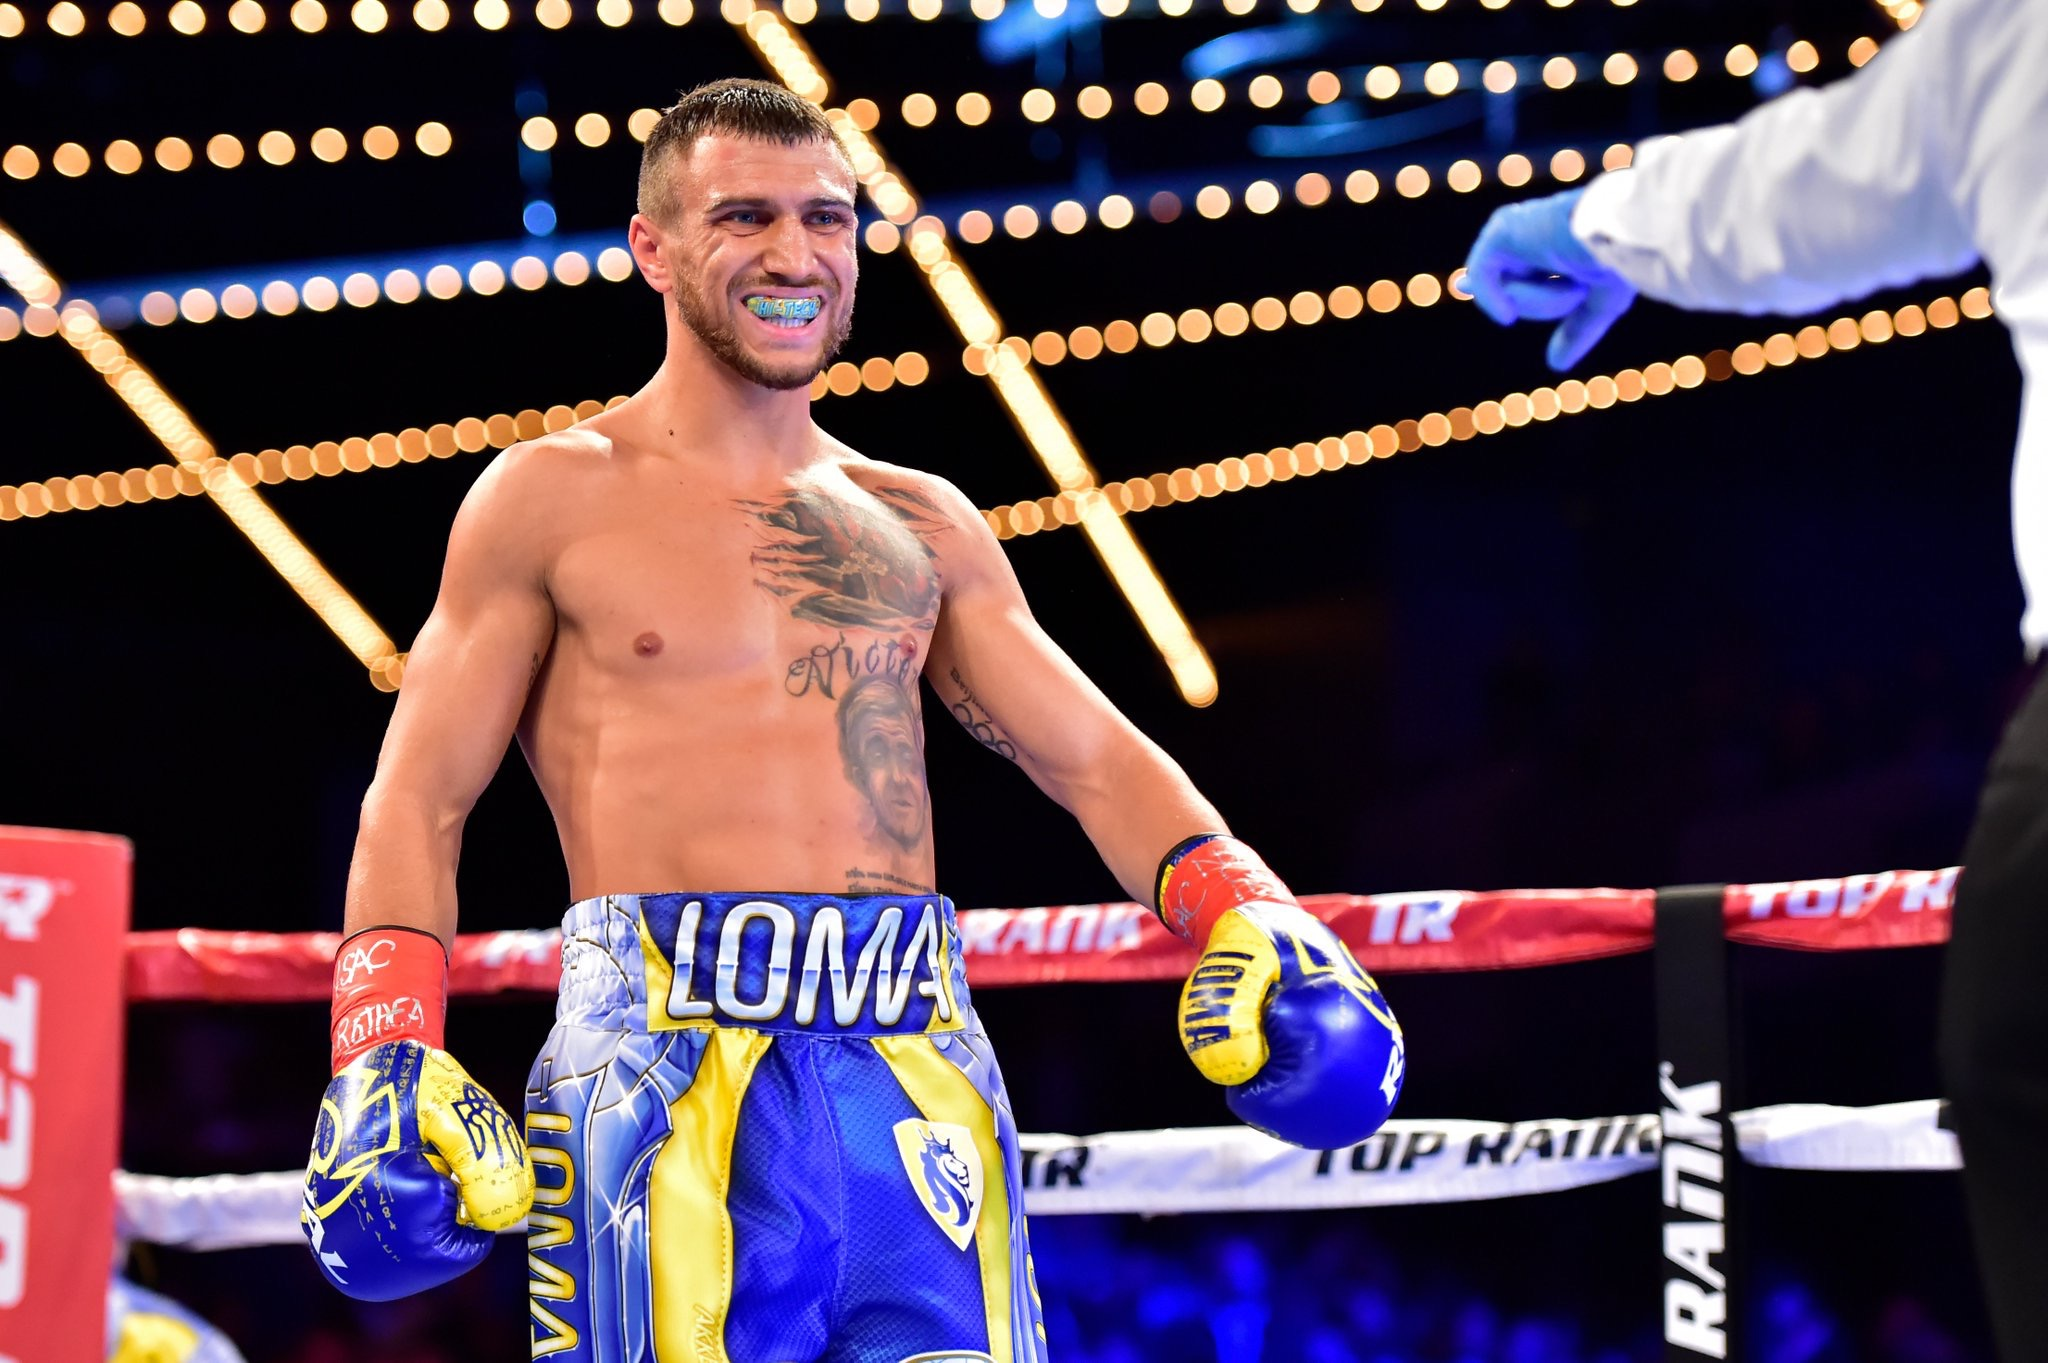 Lomachenko stops Linares for historic 3rd world title